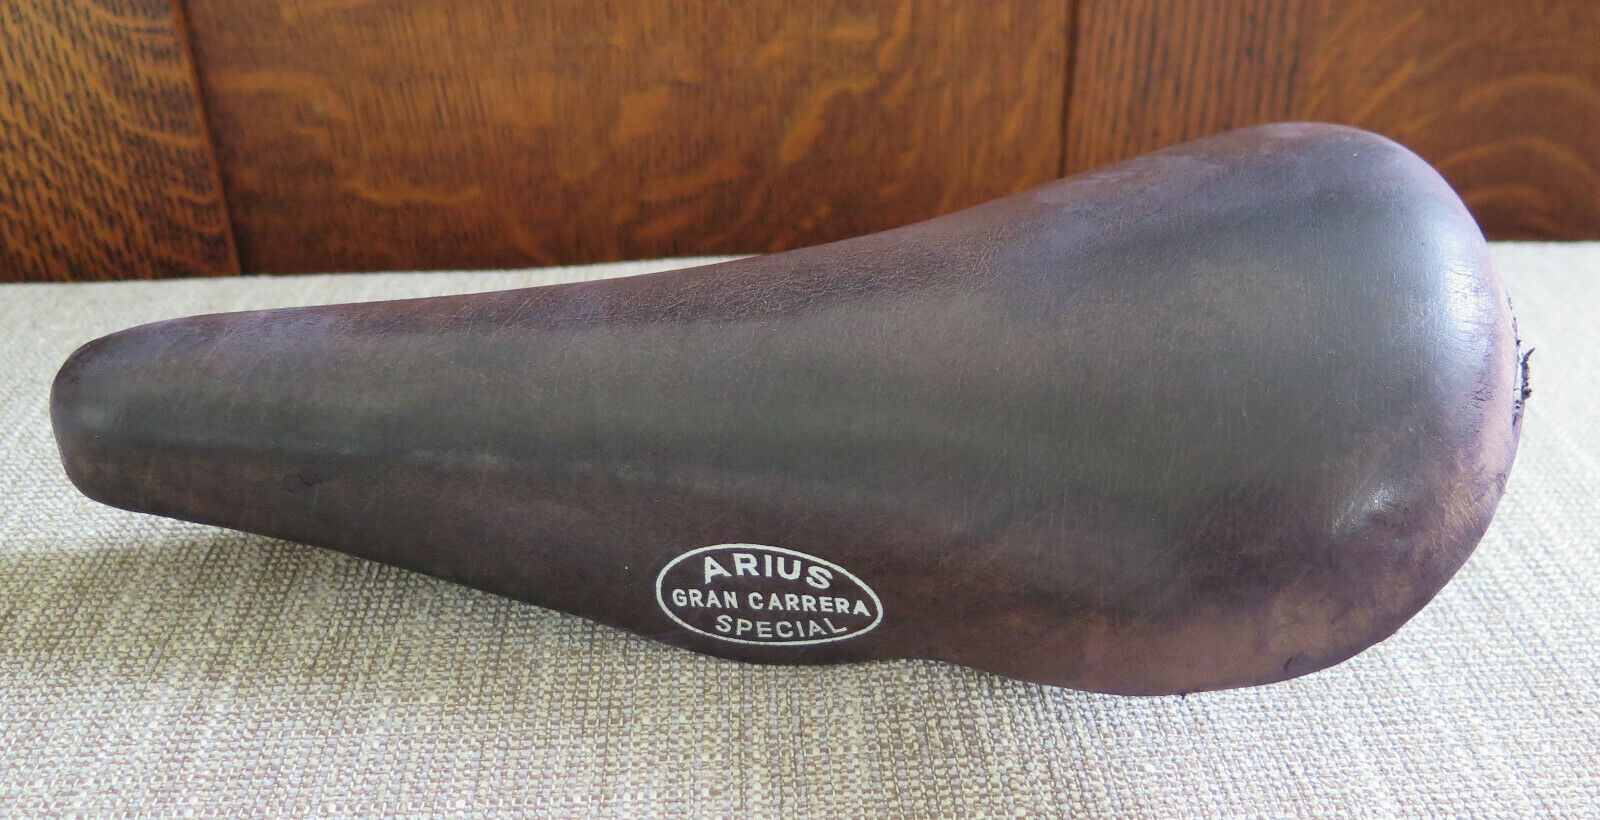 Vintage Arius Gran Carrera Special Brown Leather Bicycle Seat  Saddle Spain  cheaper prices